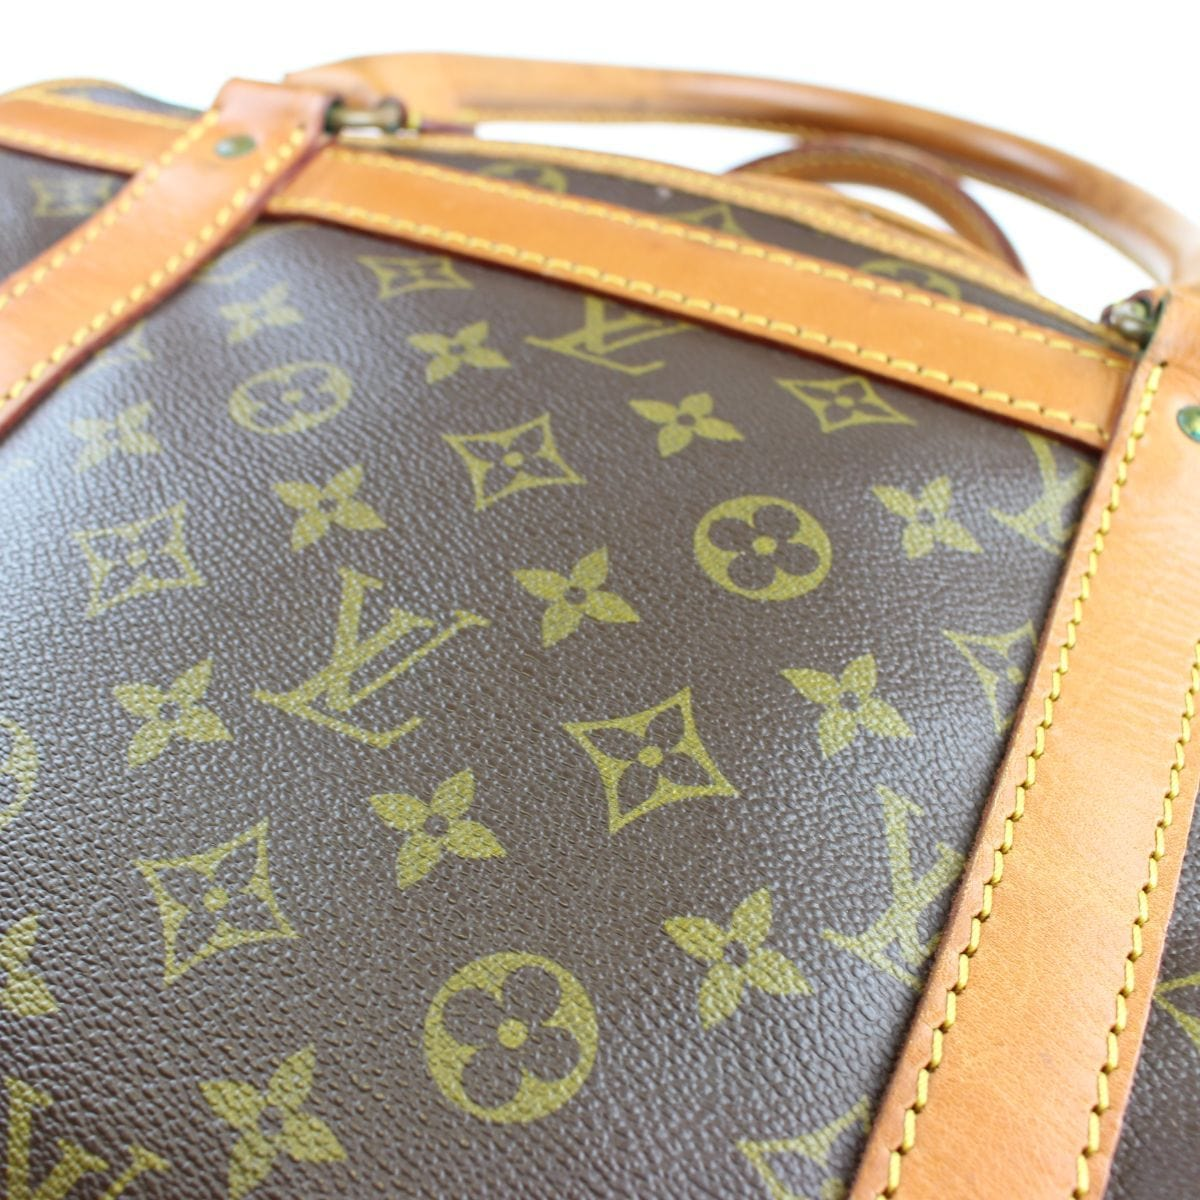 louis vuitton demi supur monogram boston bag - SaruGeneral